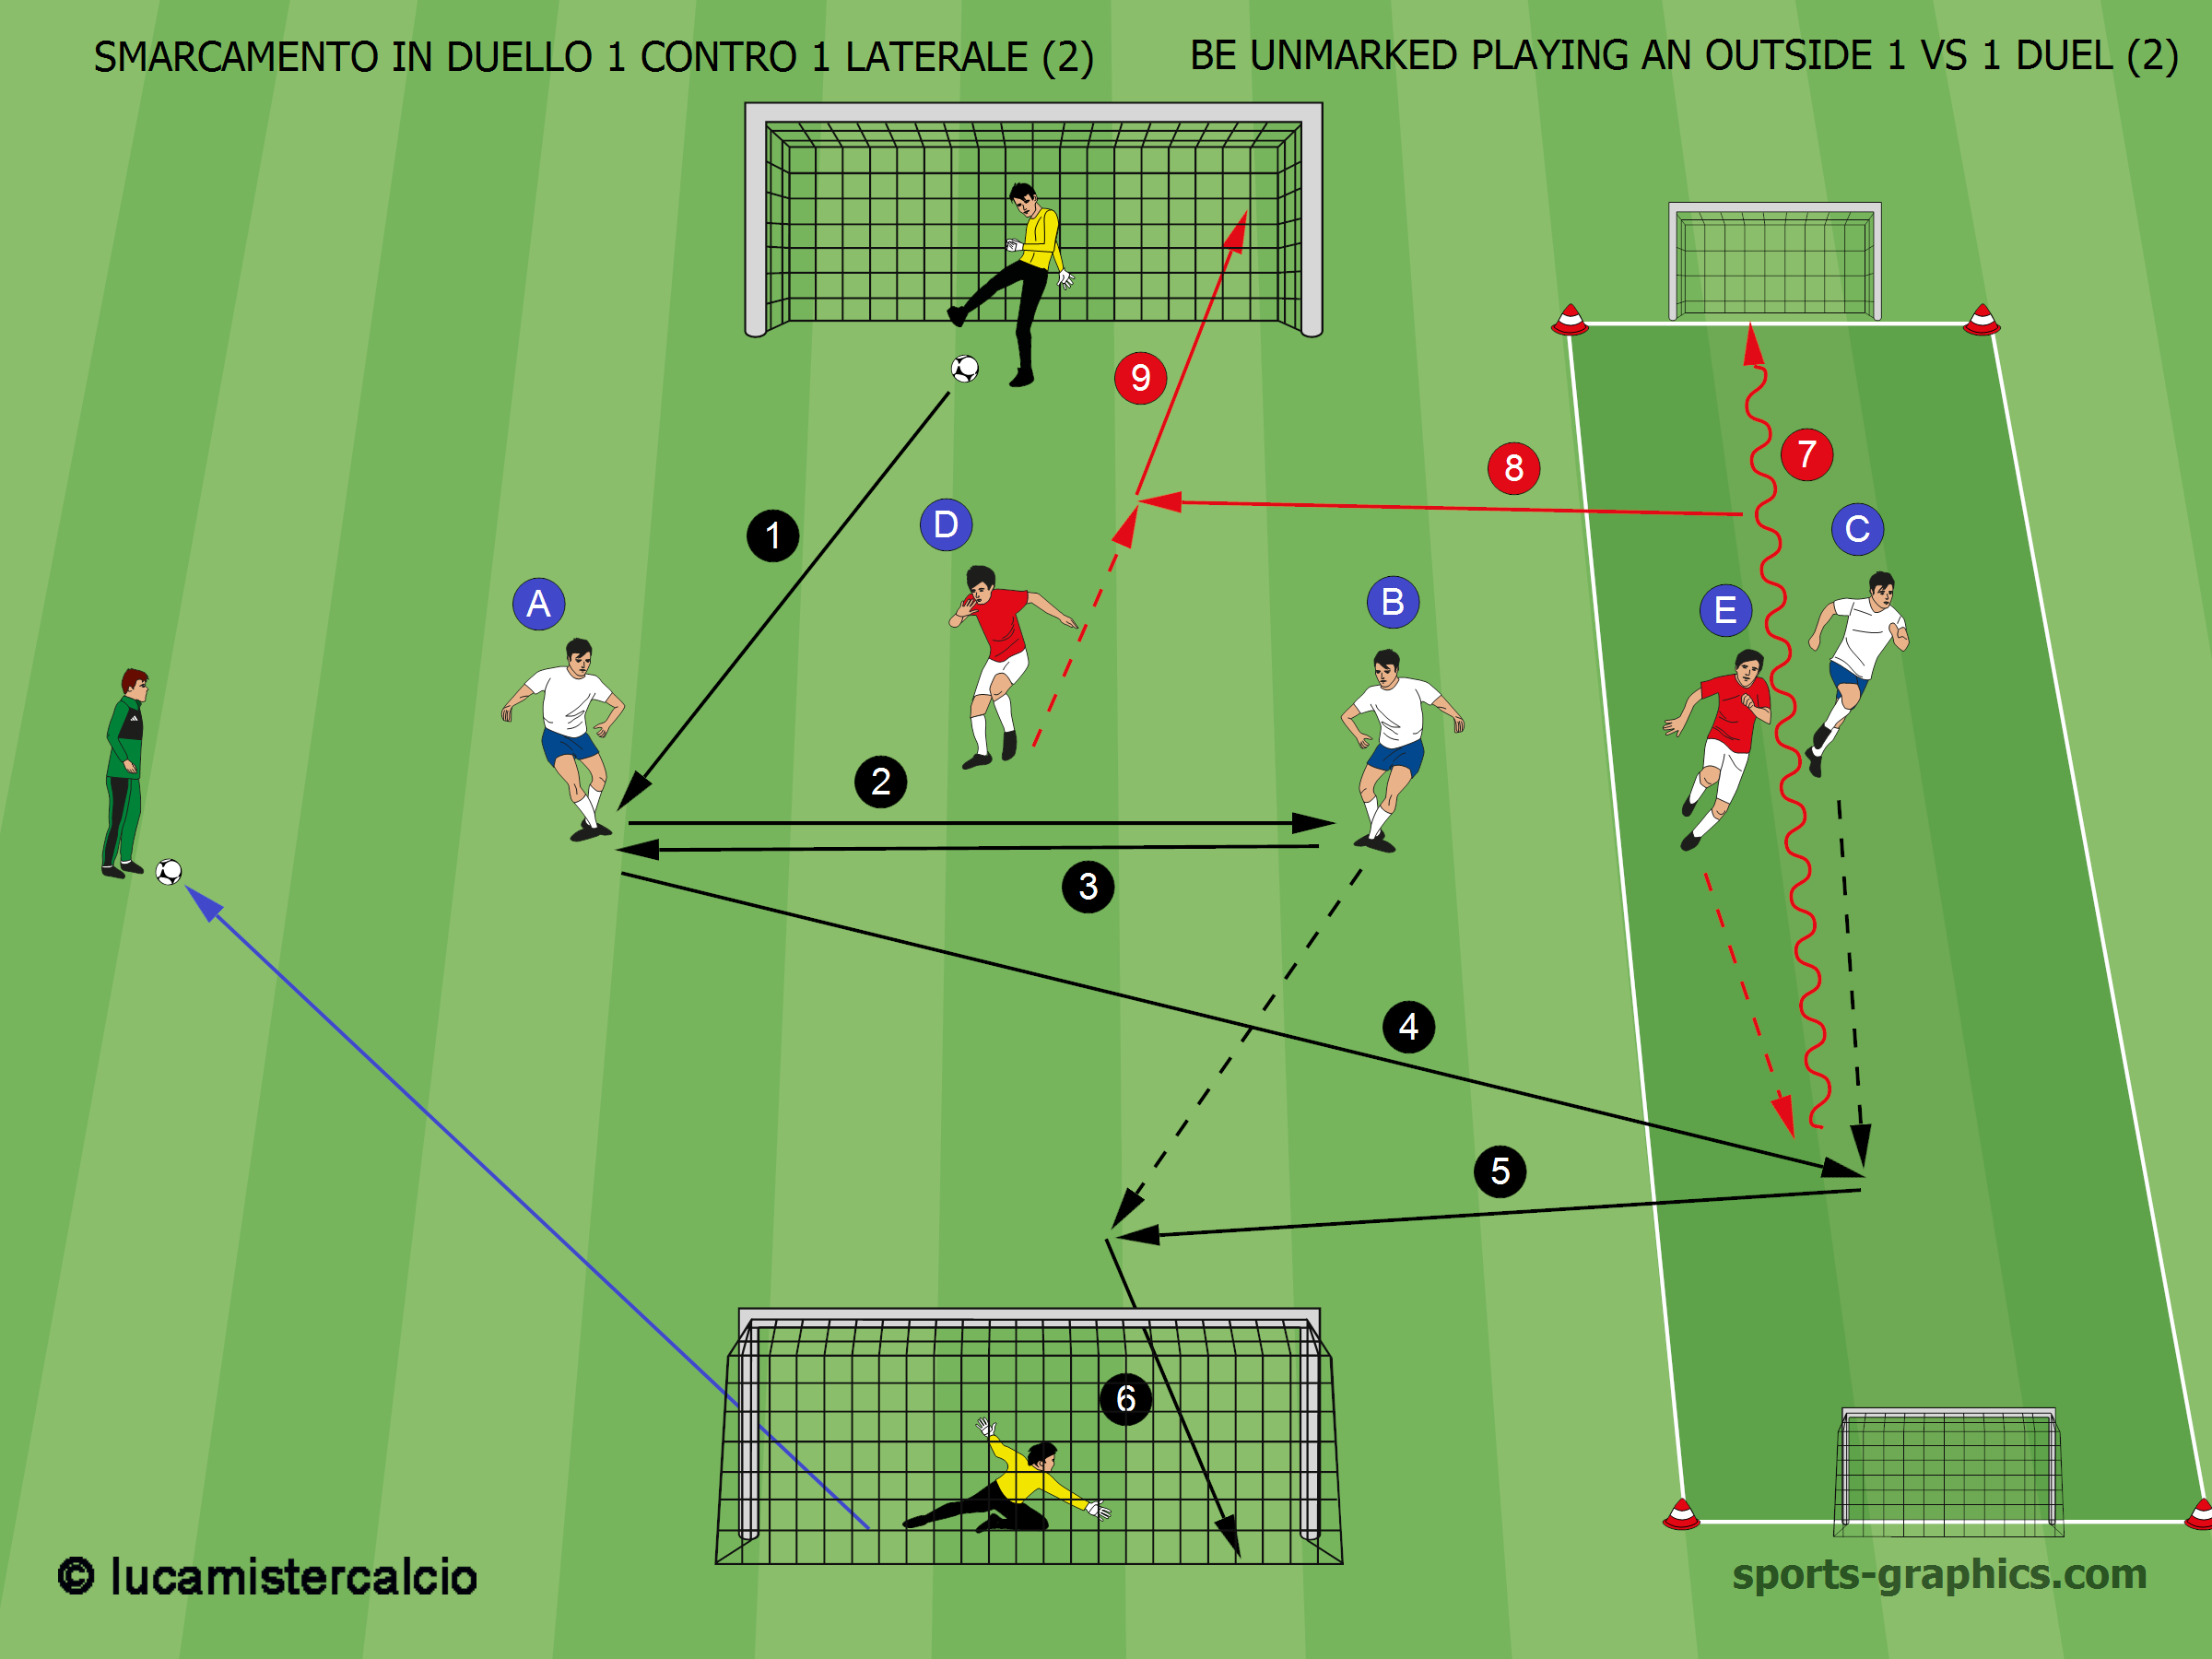 Smarcamento in duello 1 contro 1 laterale (2) – Be unmarked playing an outside 1 vs 1 duel (2)